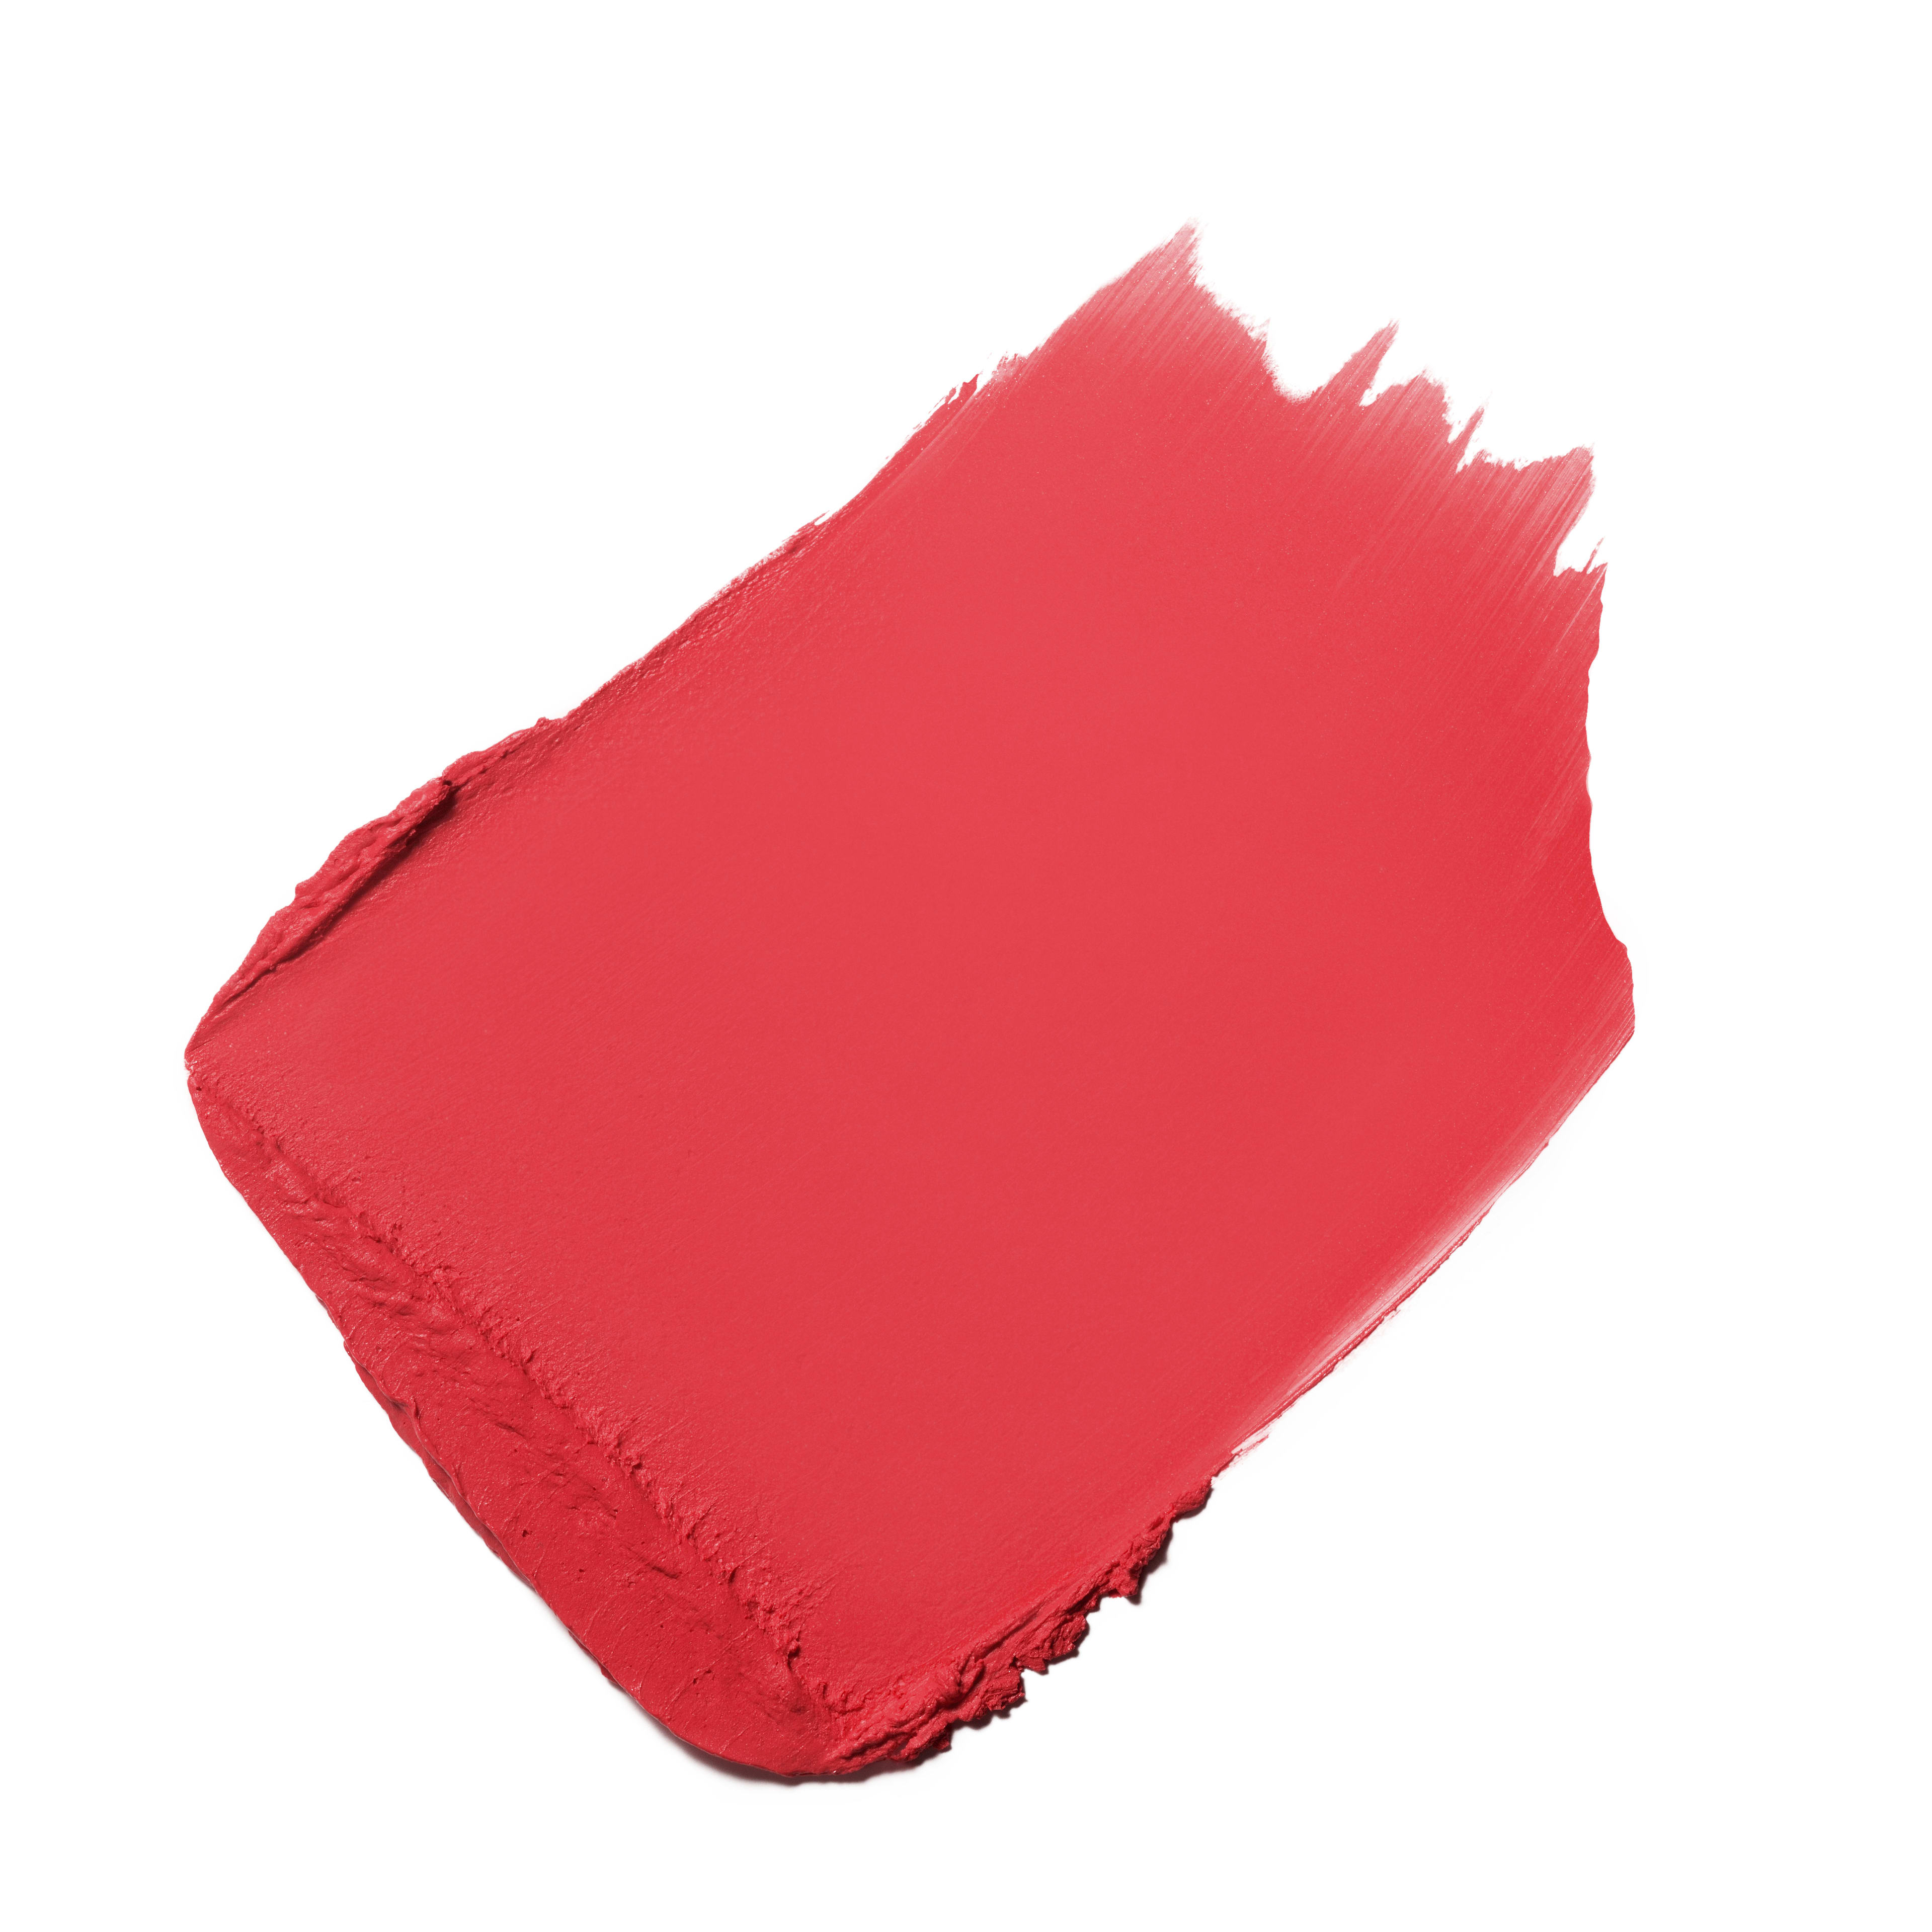 ROUGE ALLURE VELVET - makeup - 0.12OZ. -                                                                 alternative view - see full sized version